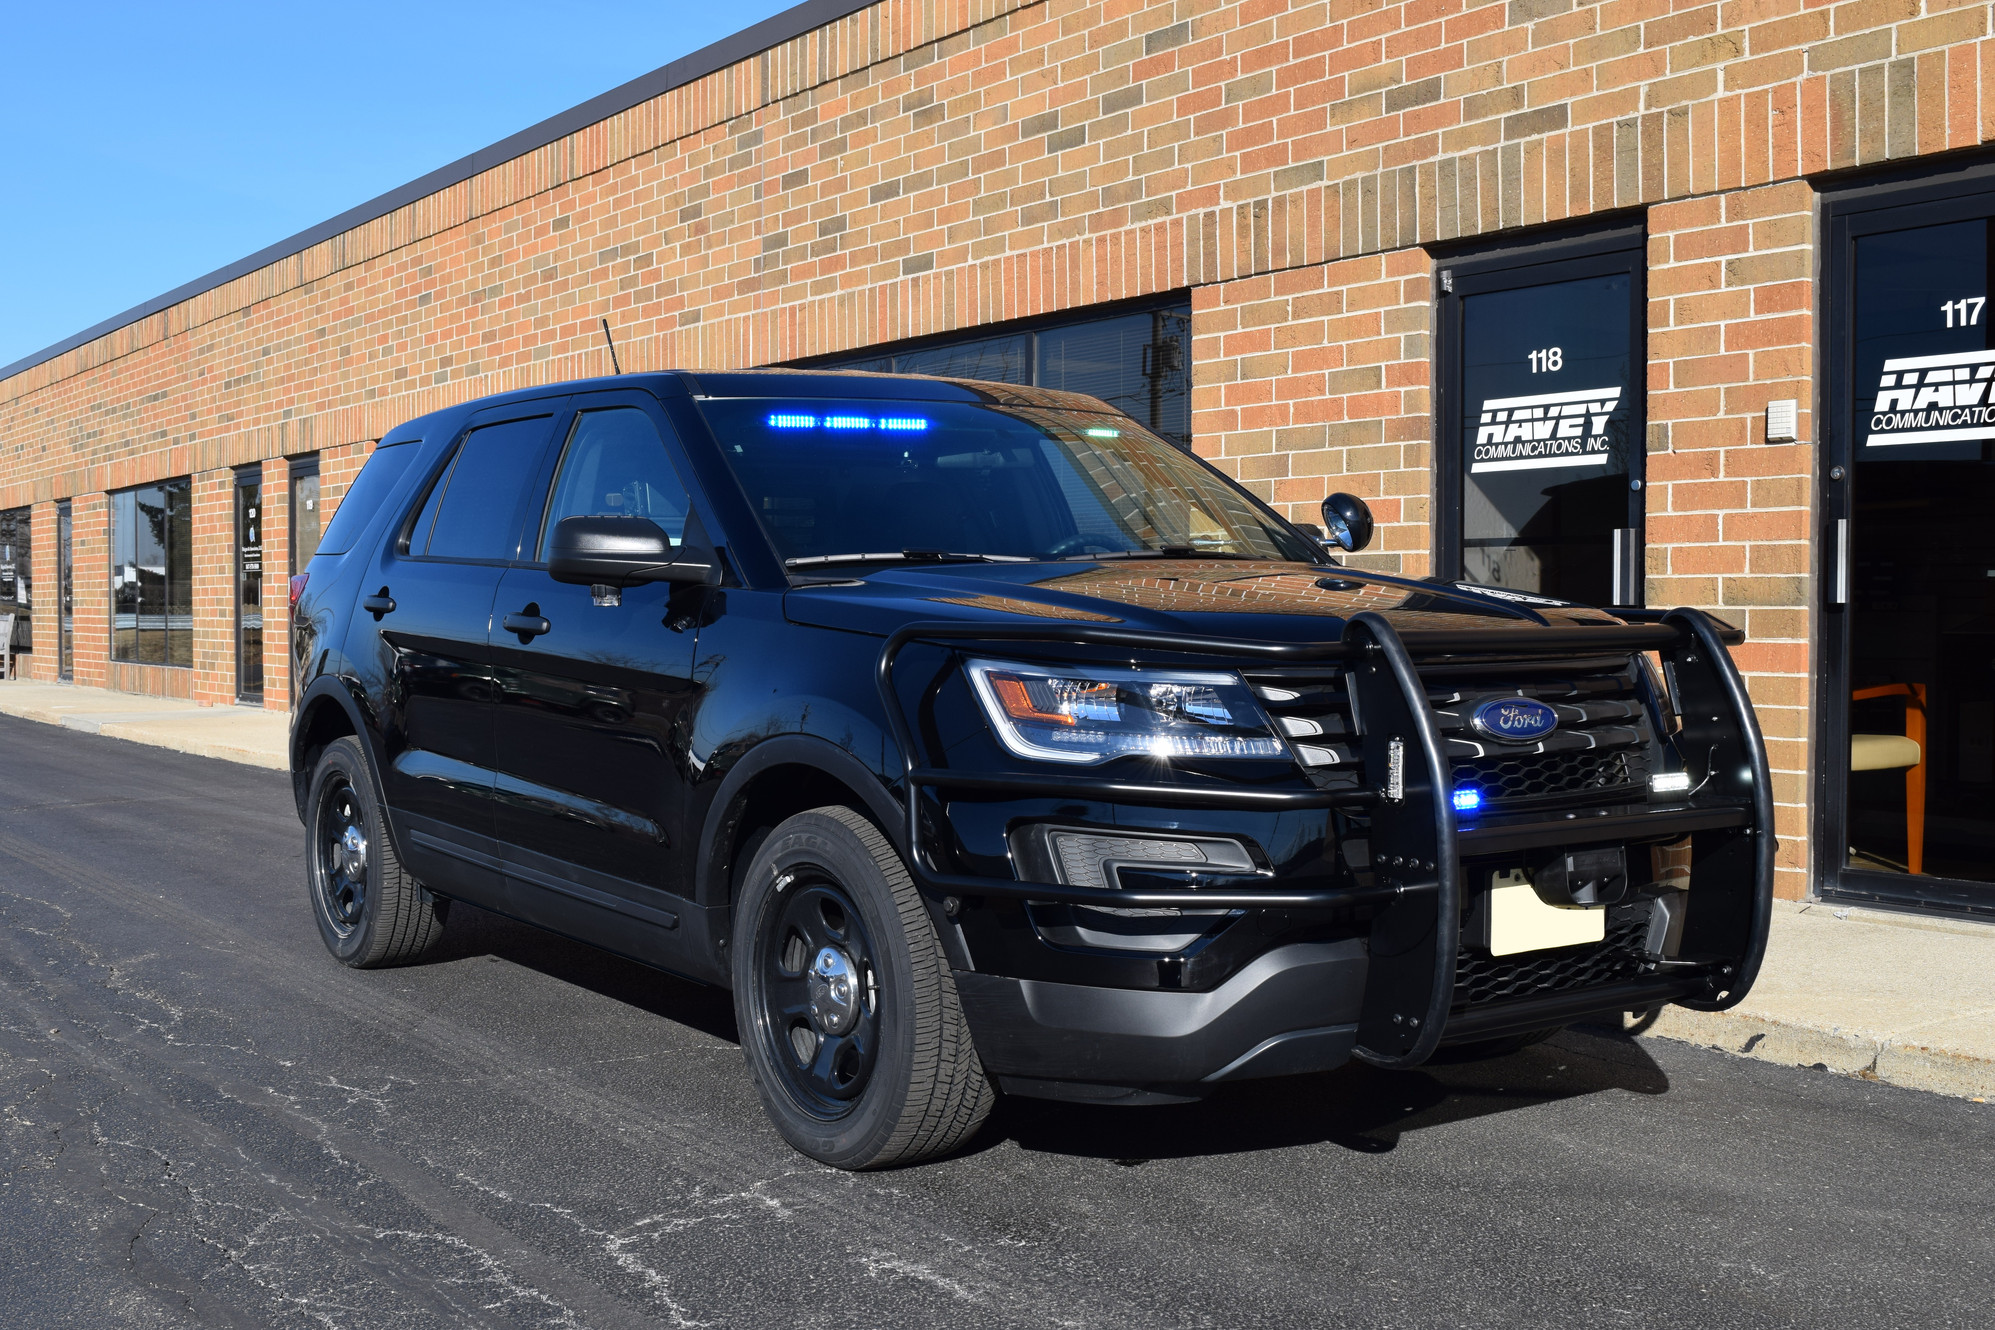 2017 Ford Interceptor Utility - K9 Unit